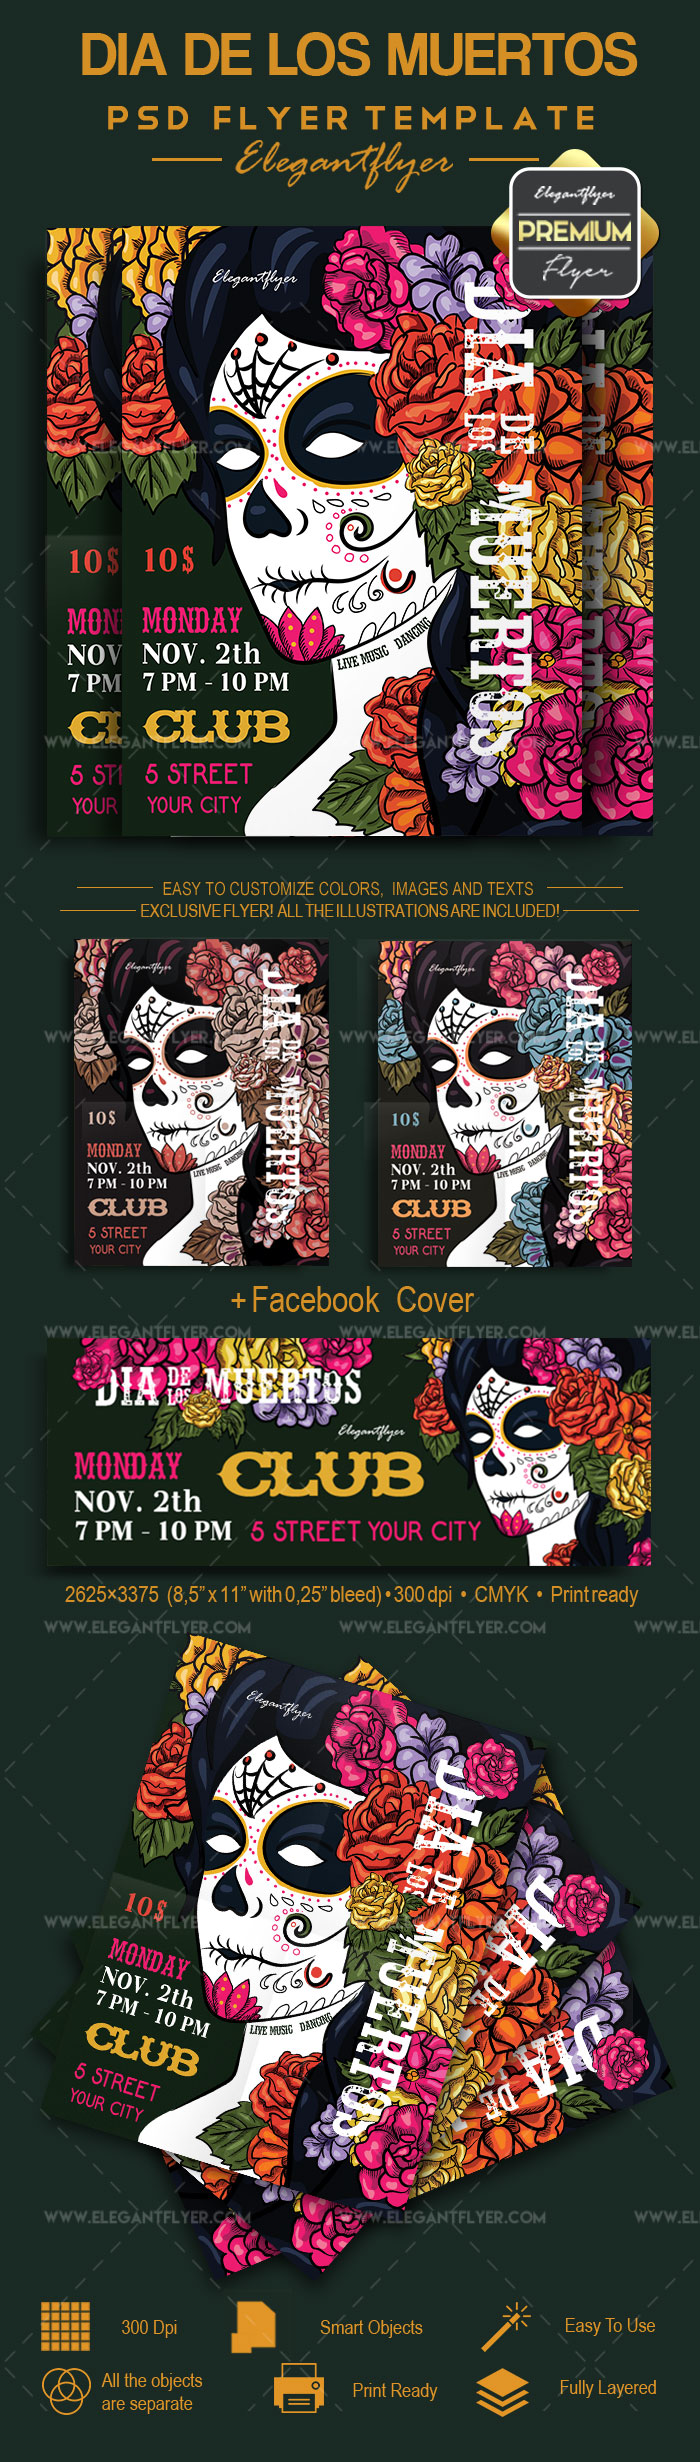 Flyer Template for Dia de Los Muertos Face Paint – by ElegantFlyer